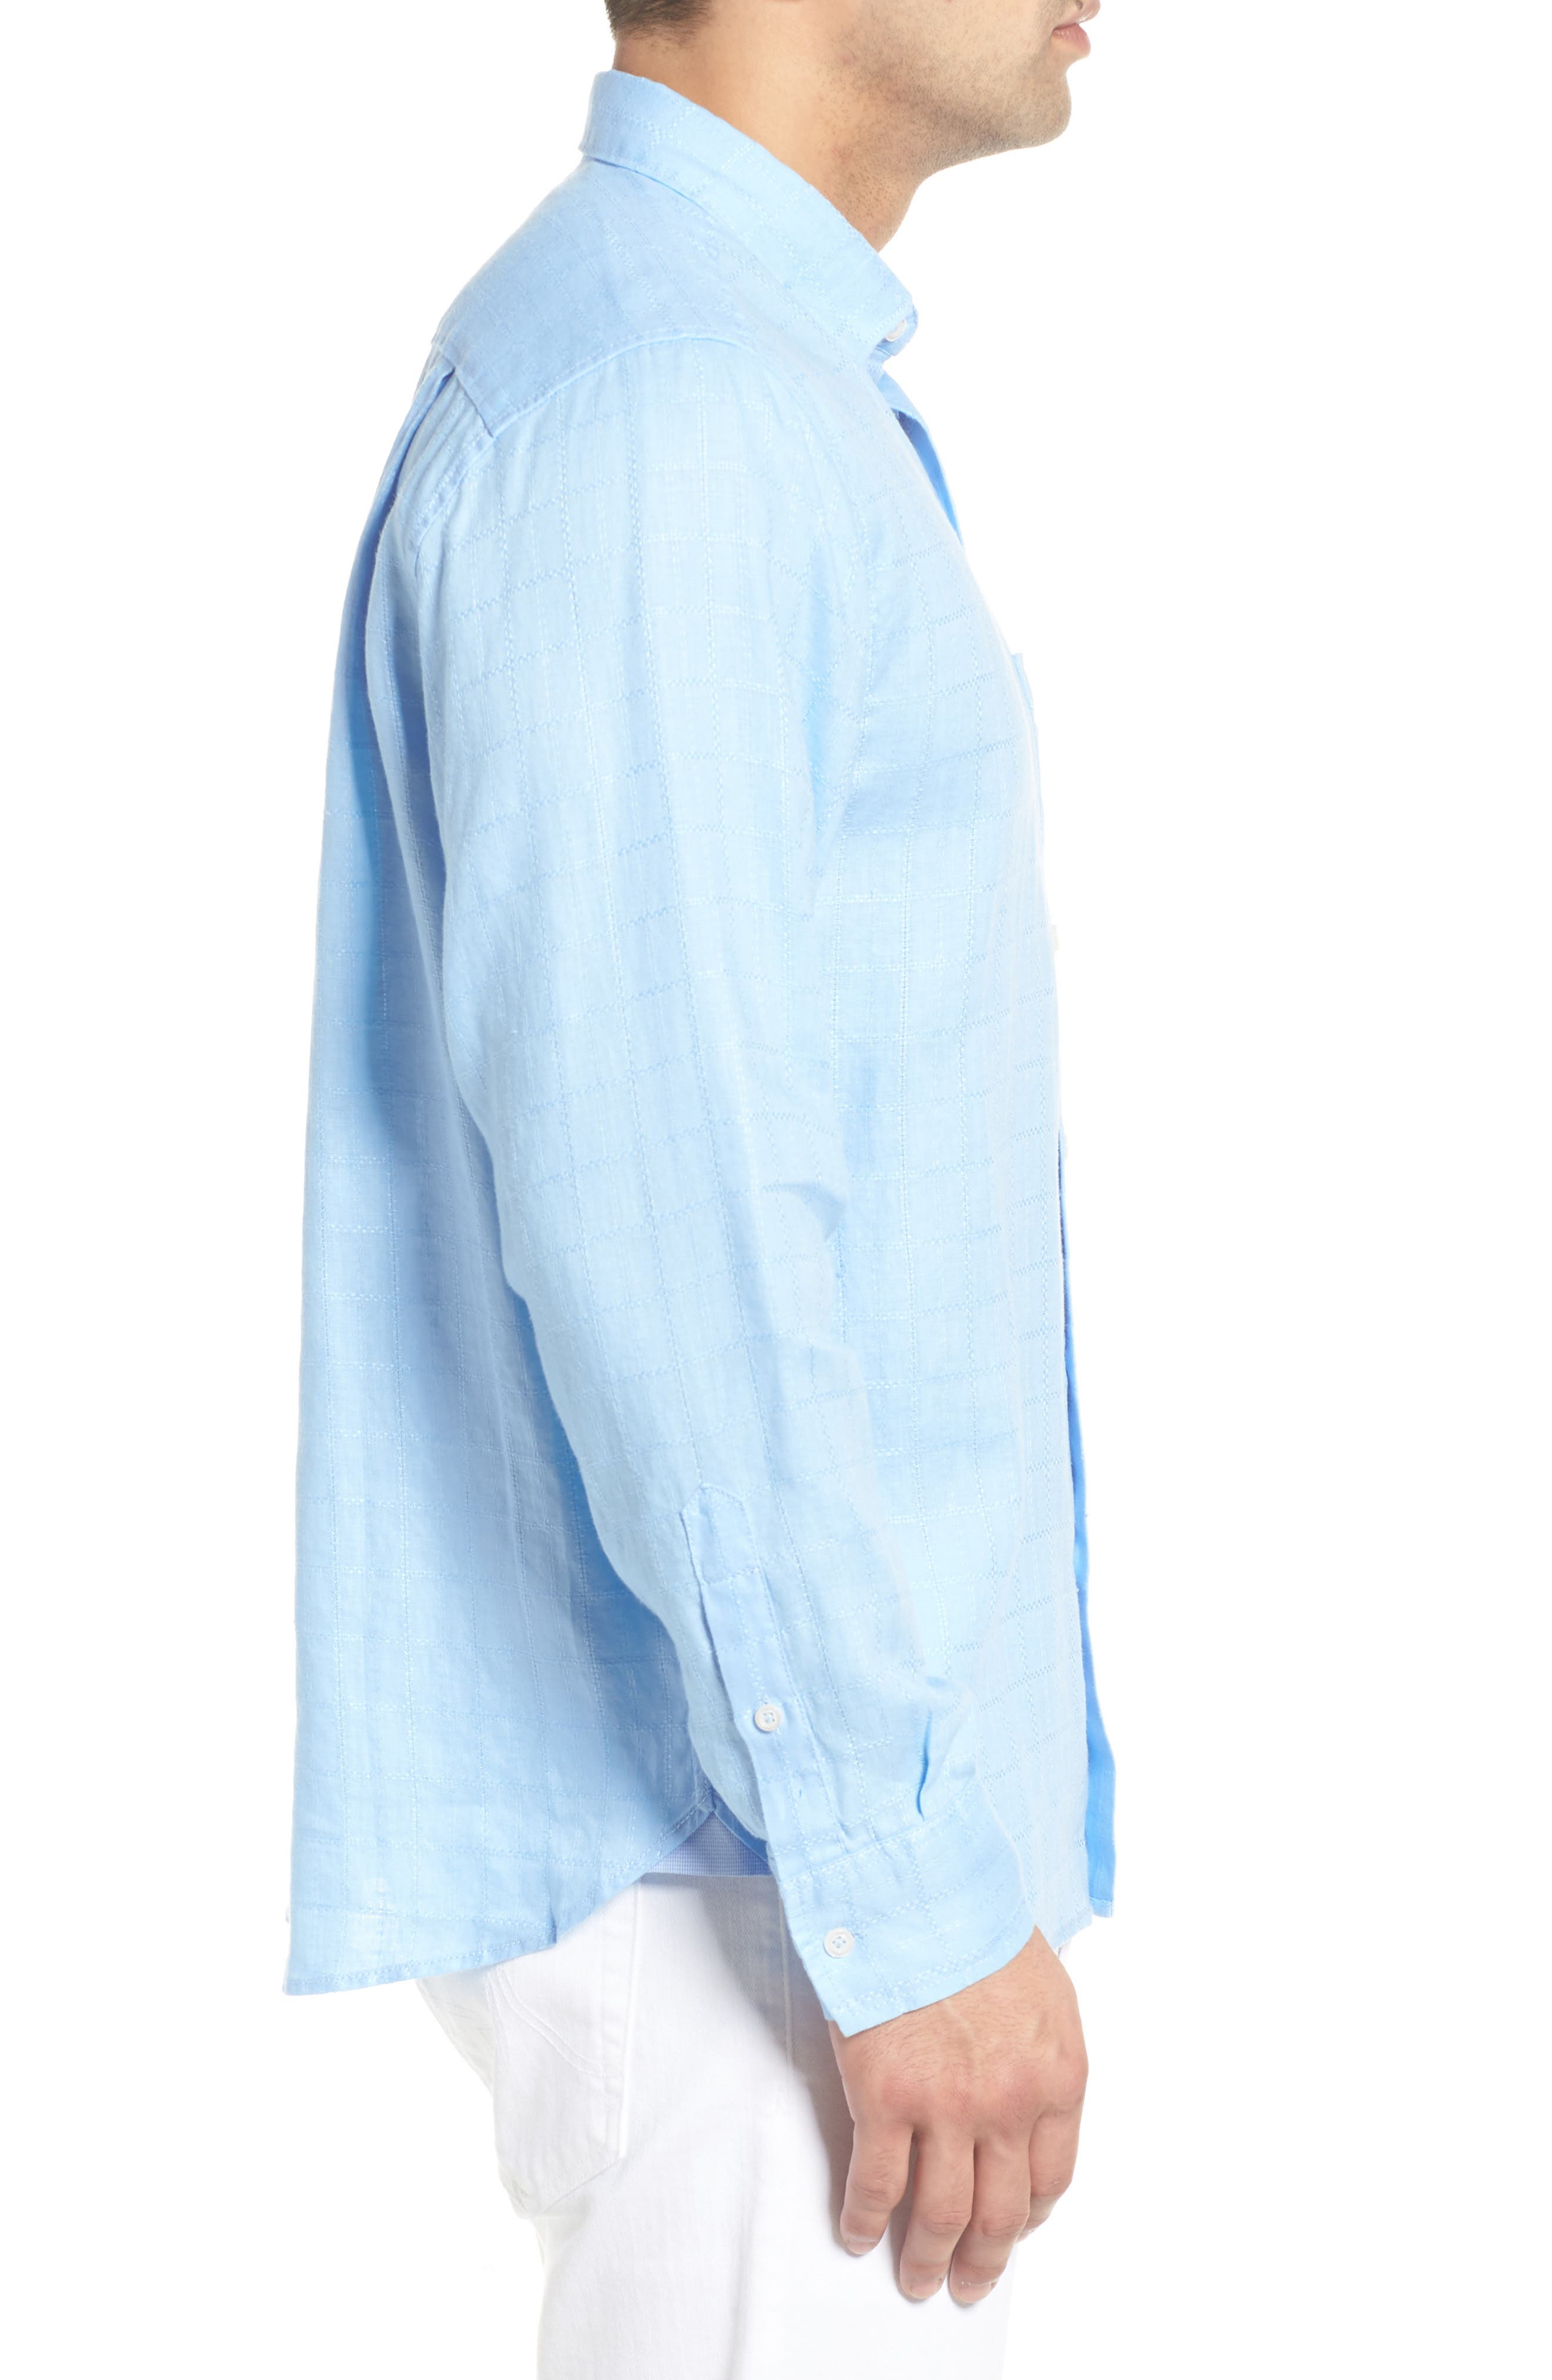 Costa Sera Linen Sport Shirt,                             Alternate thumbnail 4, color,                             Light Sky